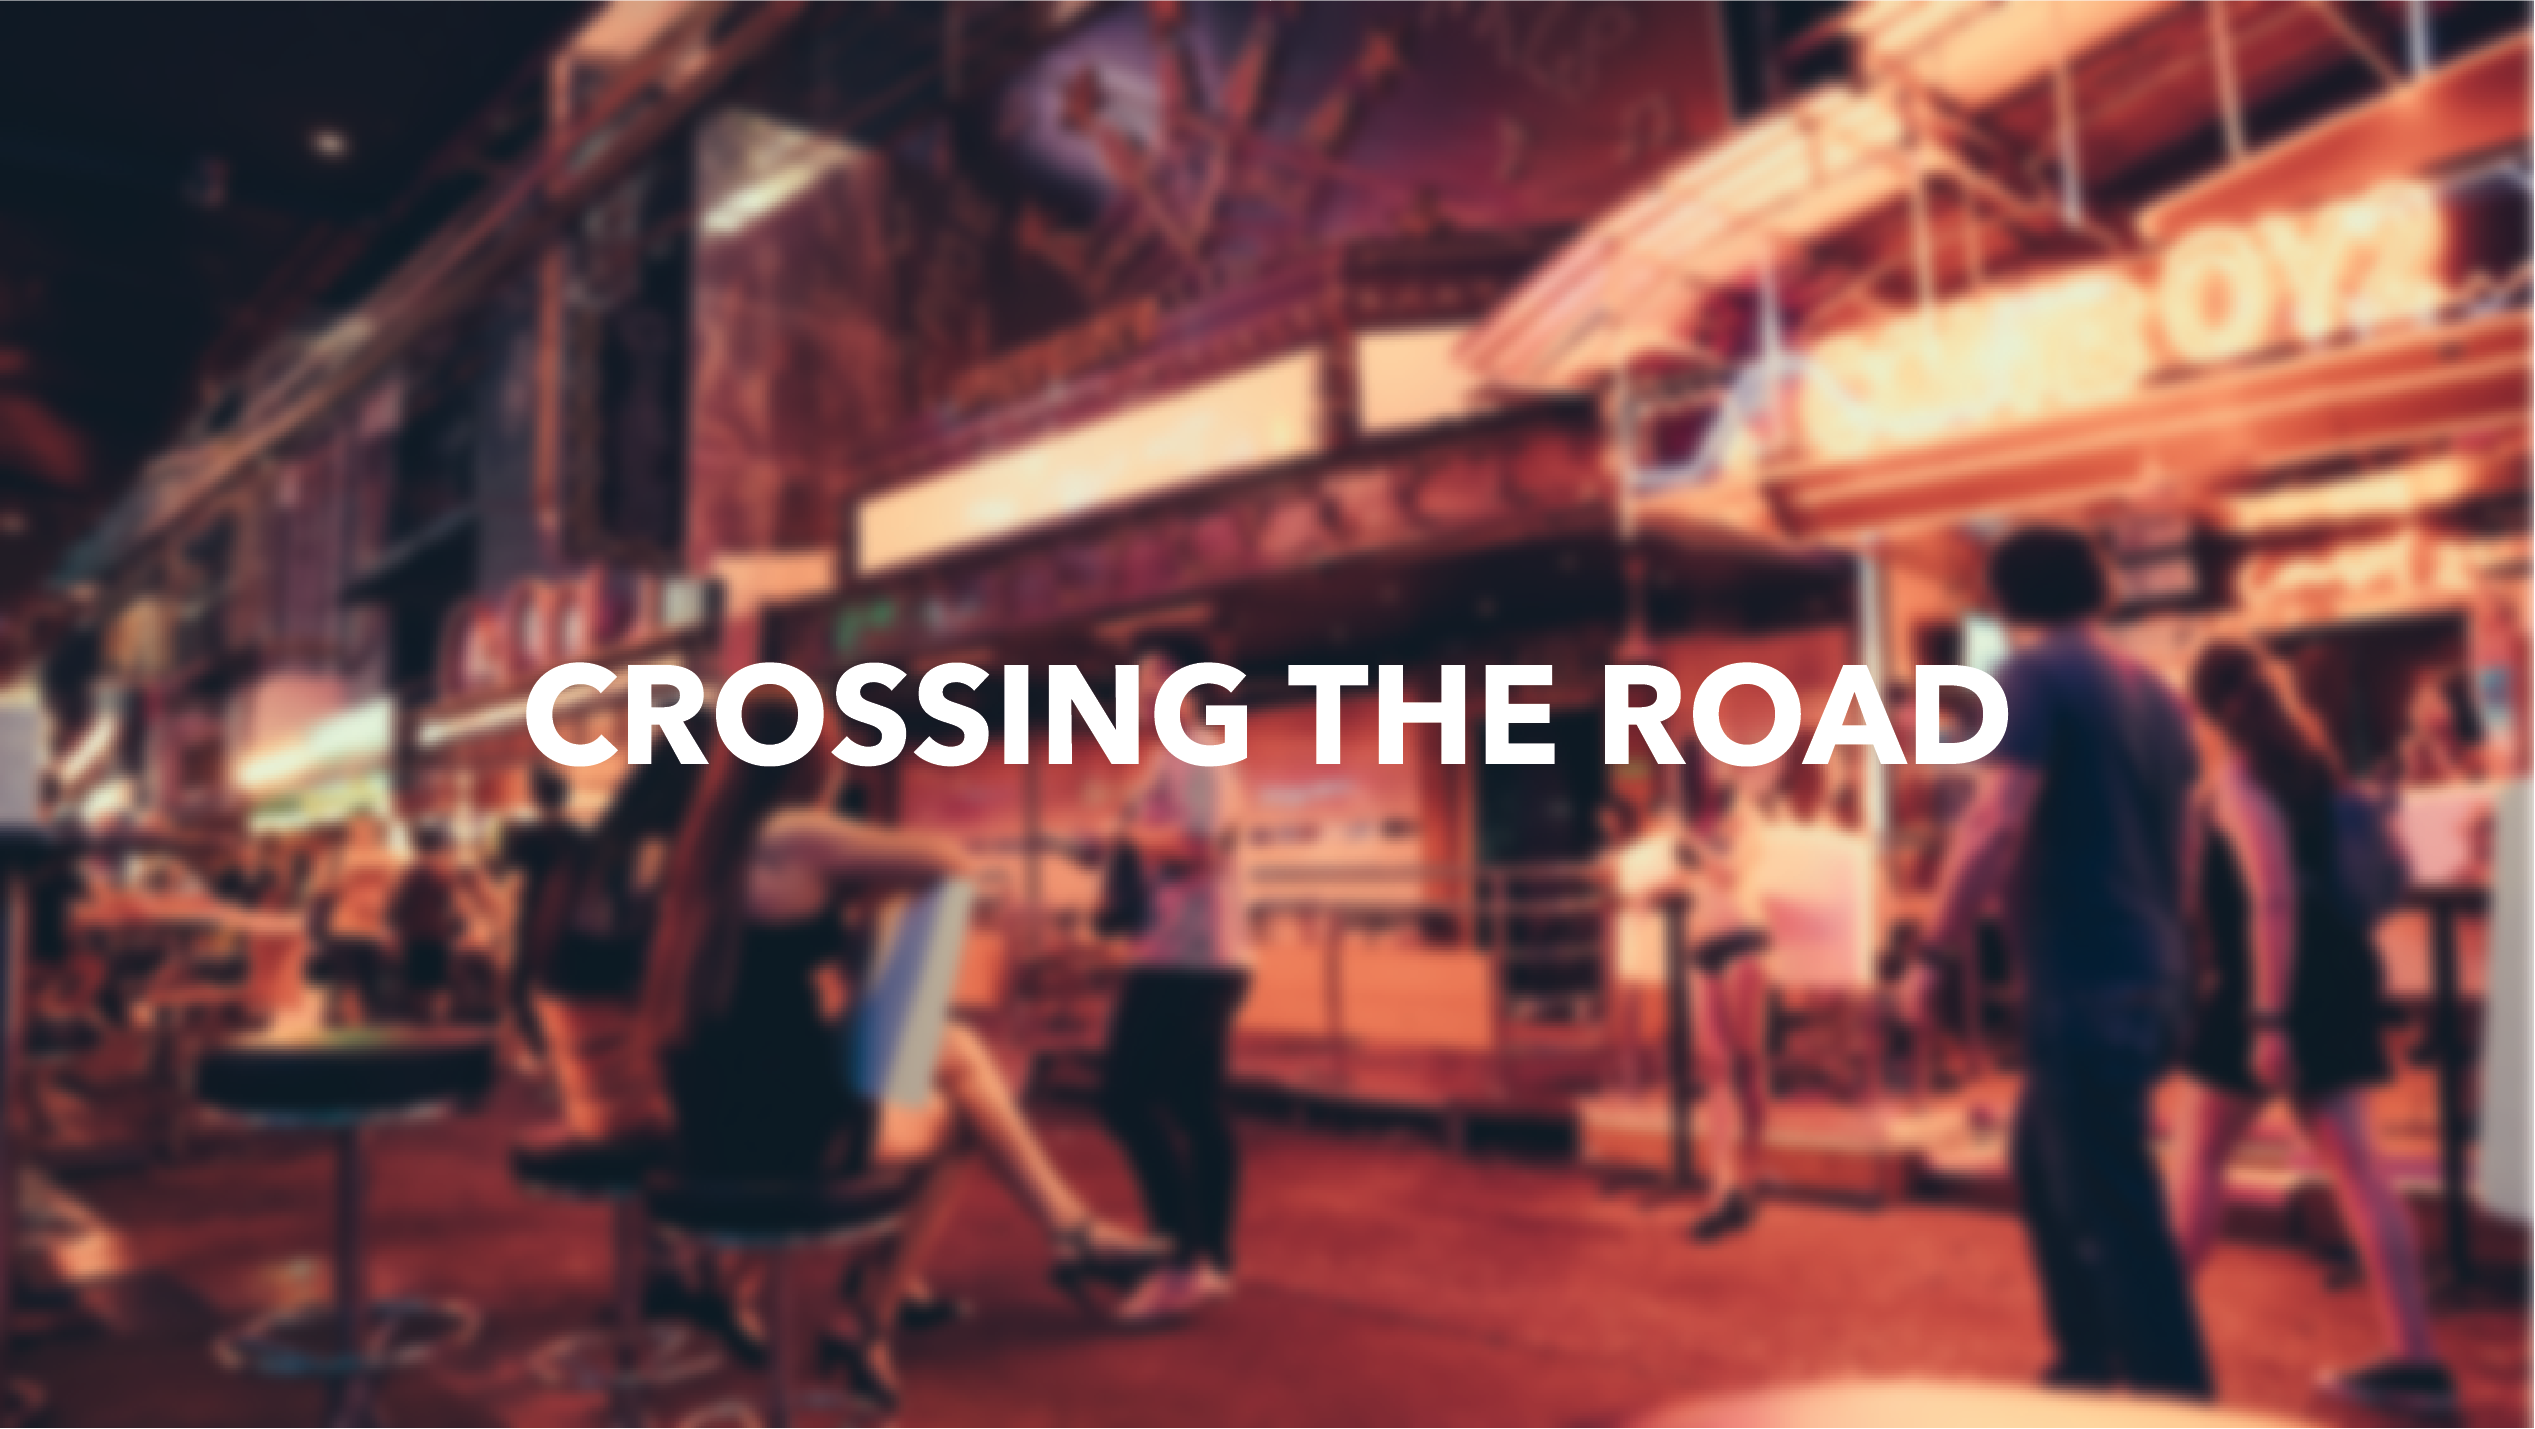 Crossing the Road Video Preview Image